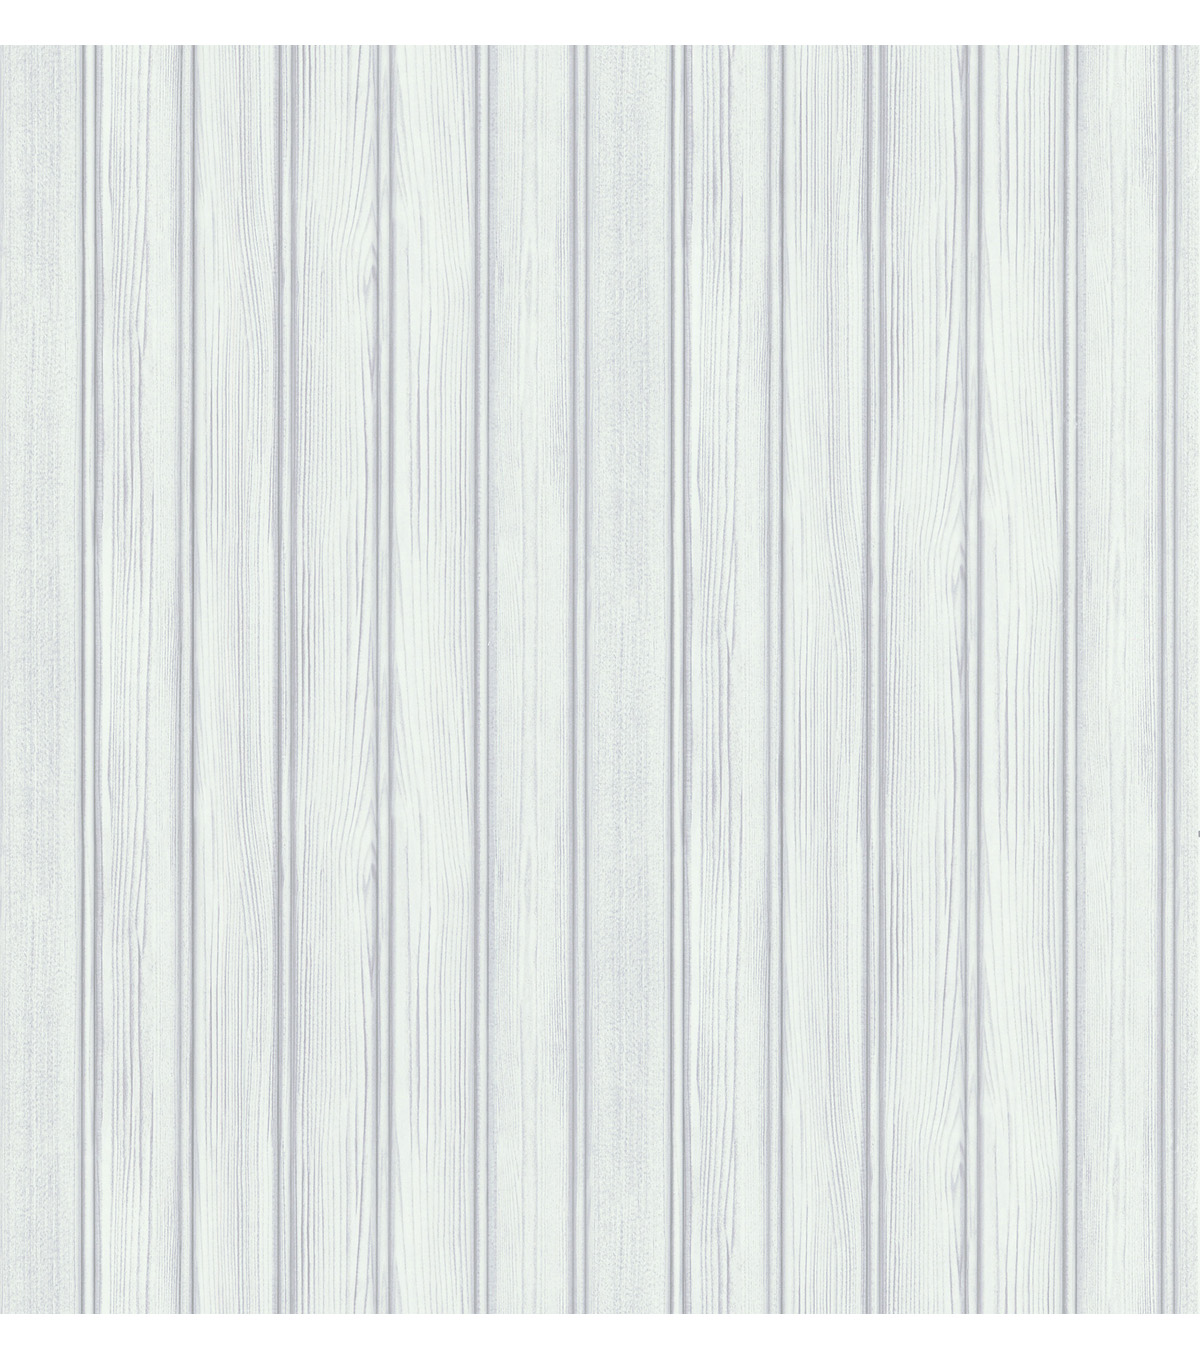 Bangor Light Grey Wood Texture Wallpaper Sample